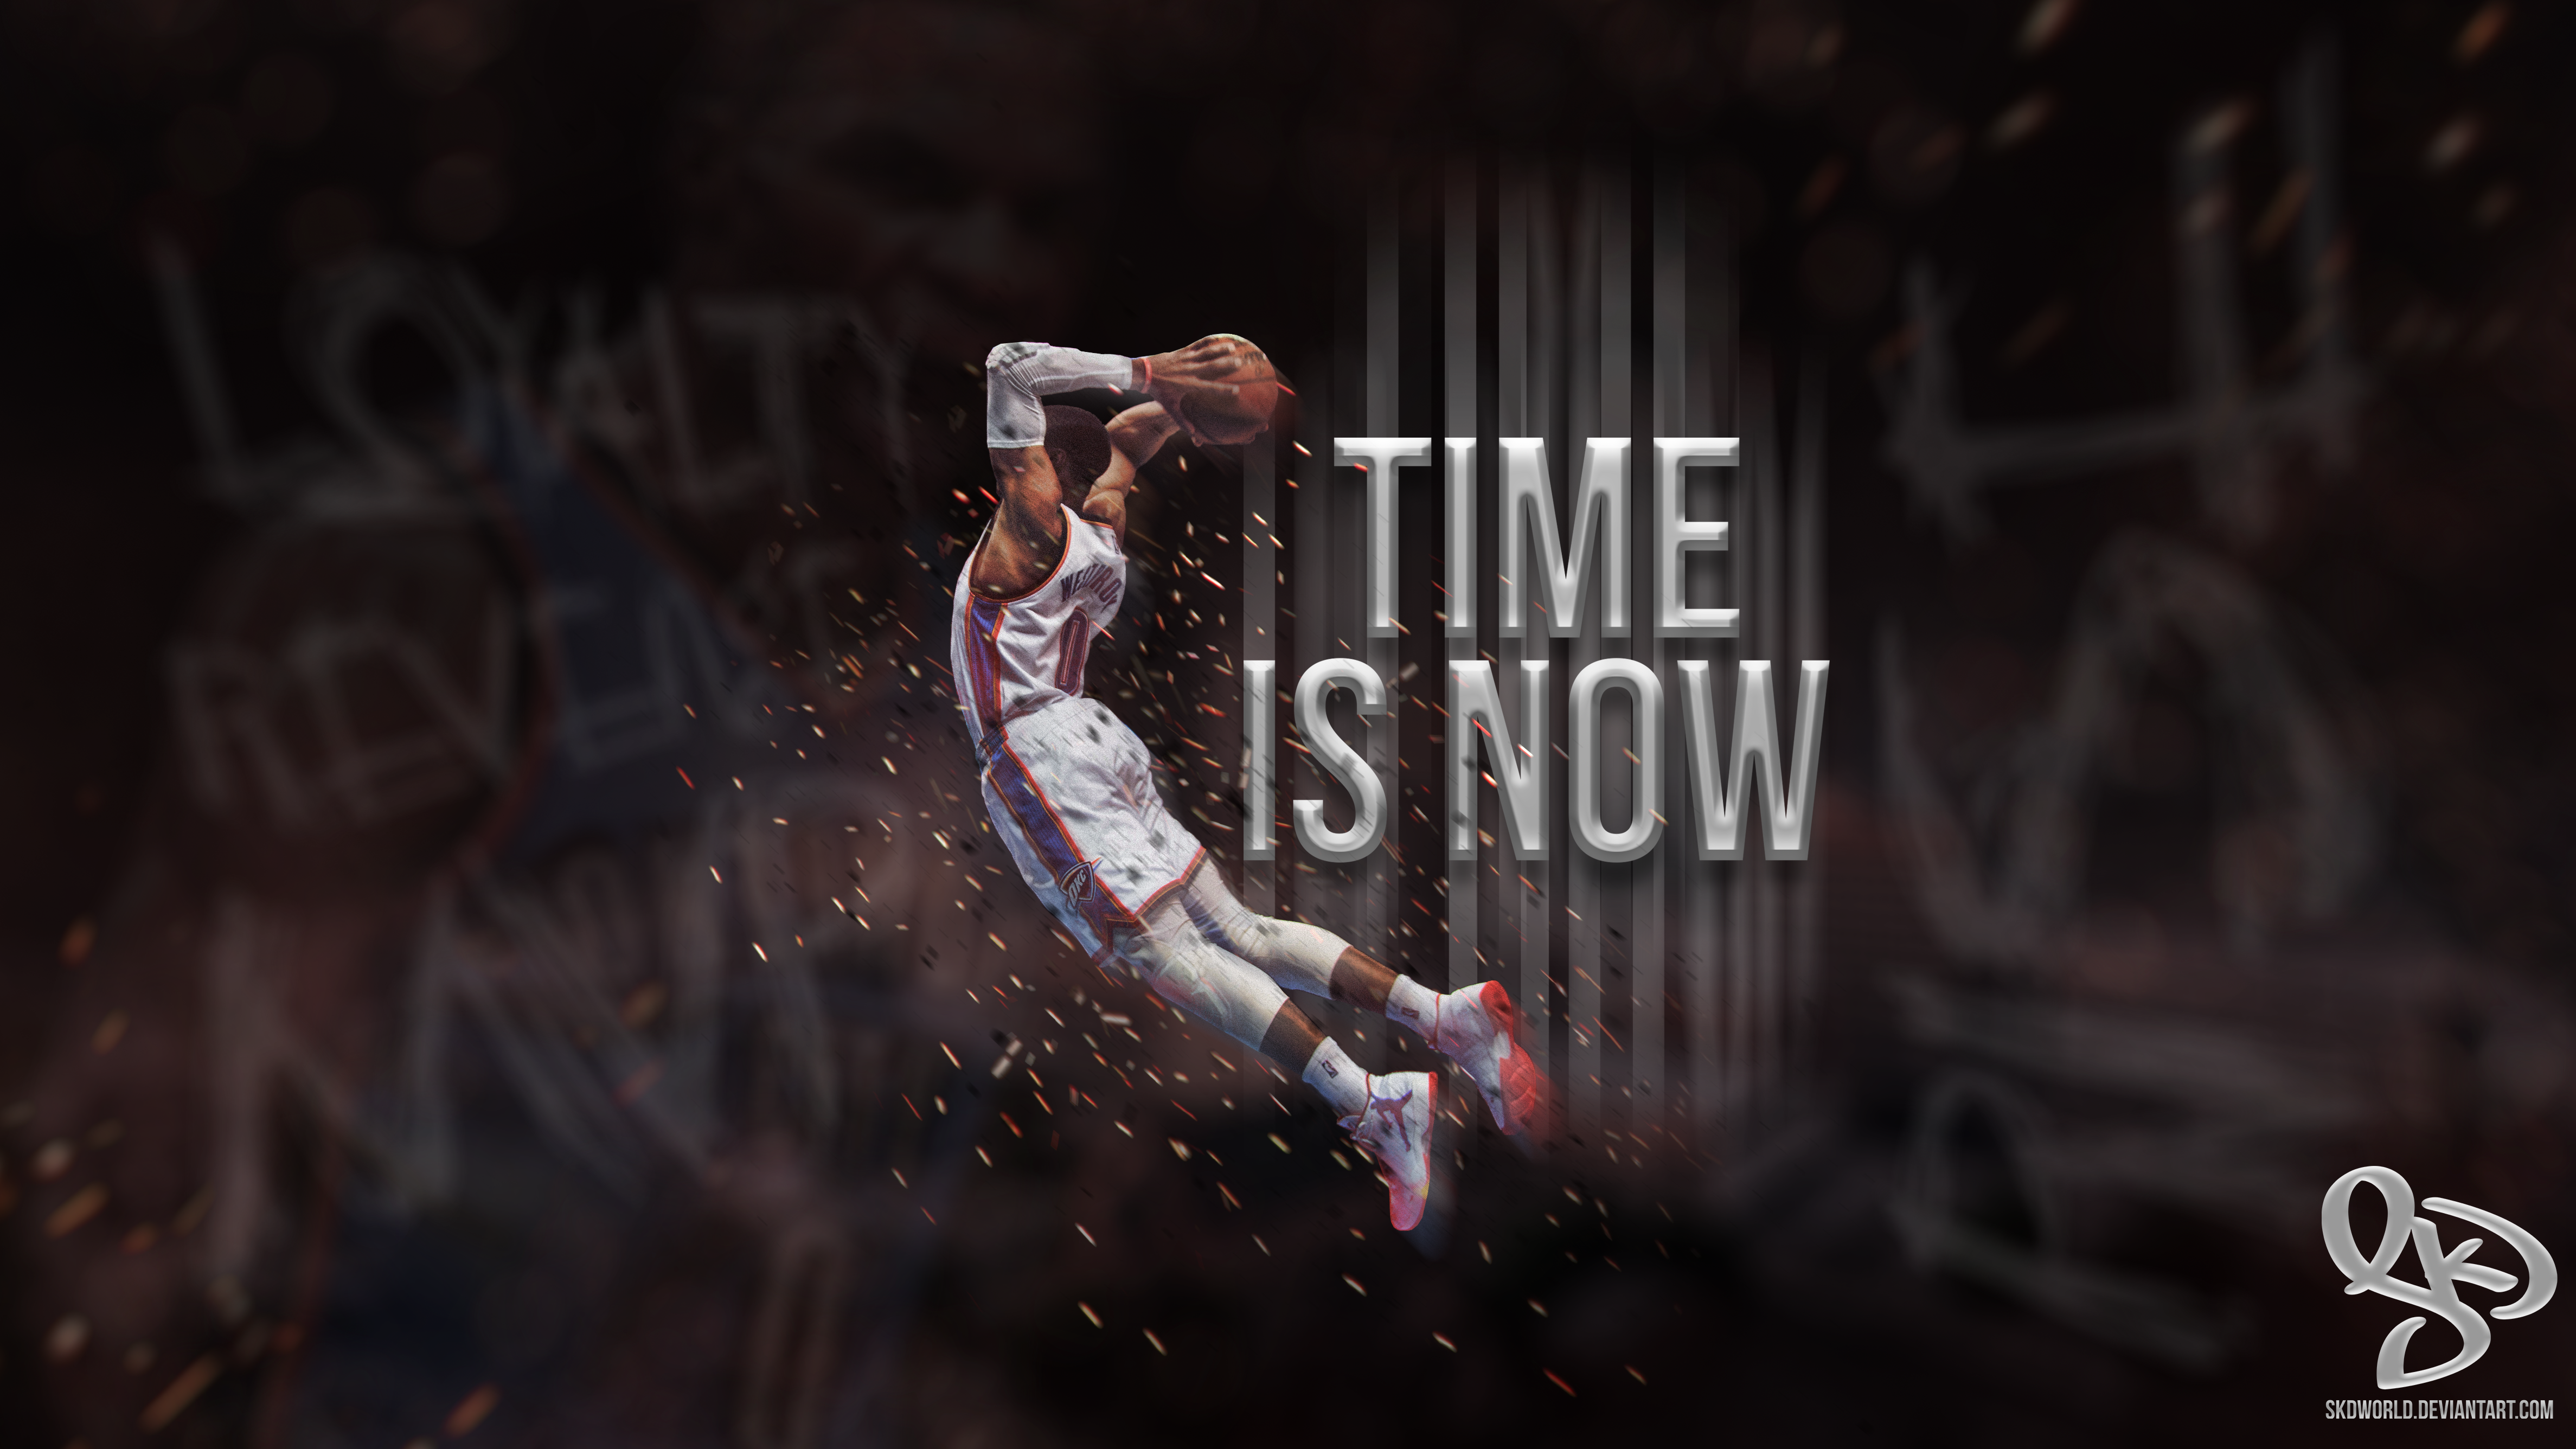 Russell Westbrook Time Is Now Wallpaper By Skdworld On